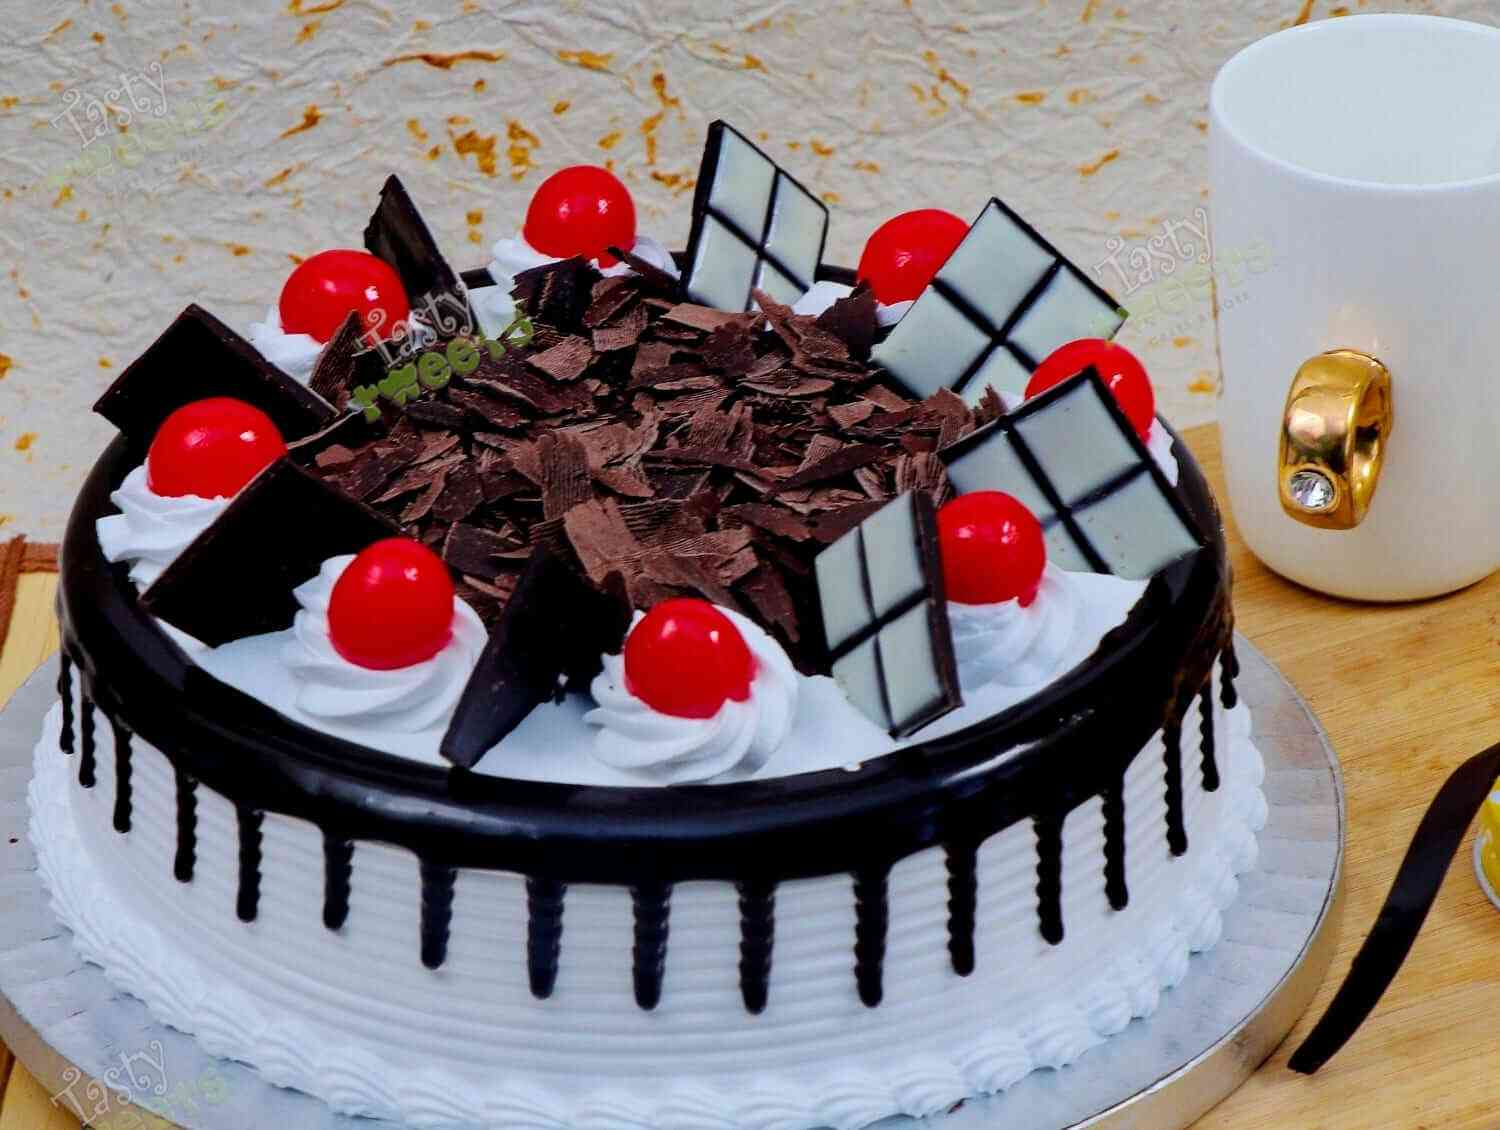 Astonishing Order Cakes Online In Gurgaon Cake Order In Gurgaon Funny Birthday Cards Online Alyptdamsfinfo